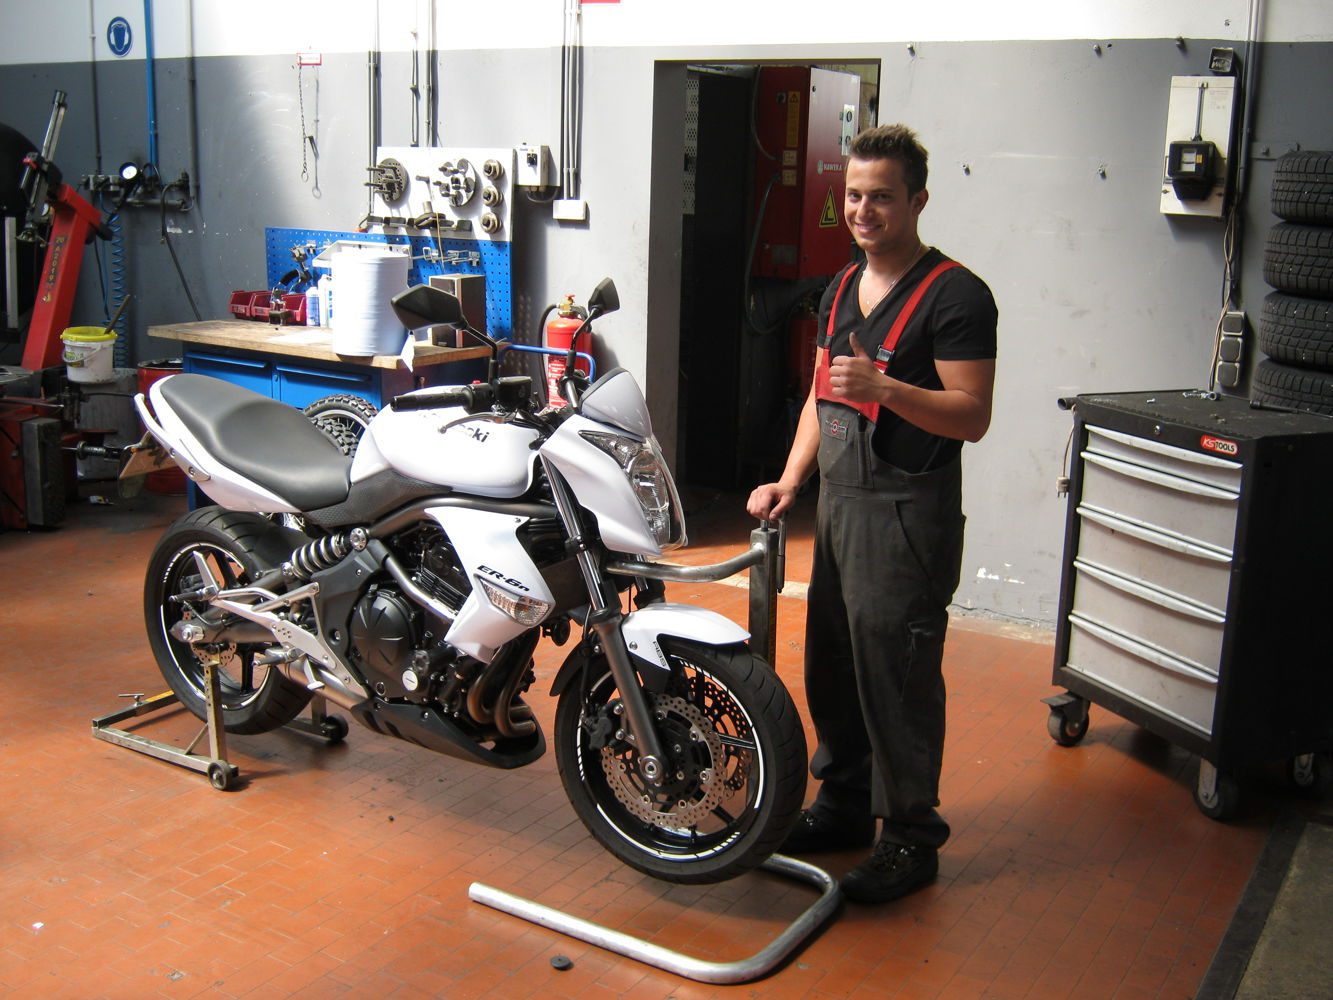 Fitting motorcycle tyres